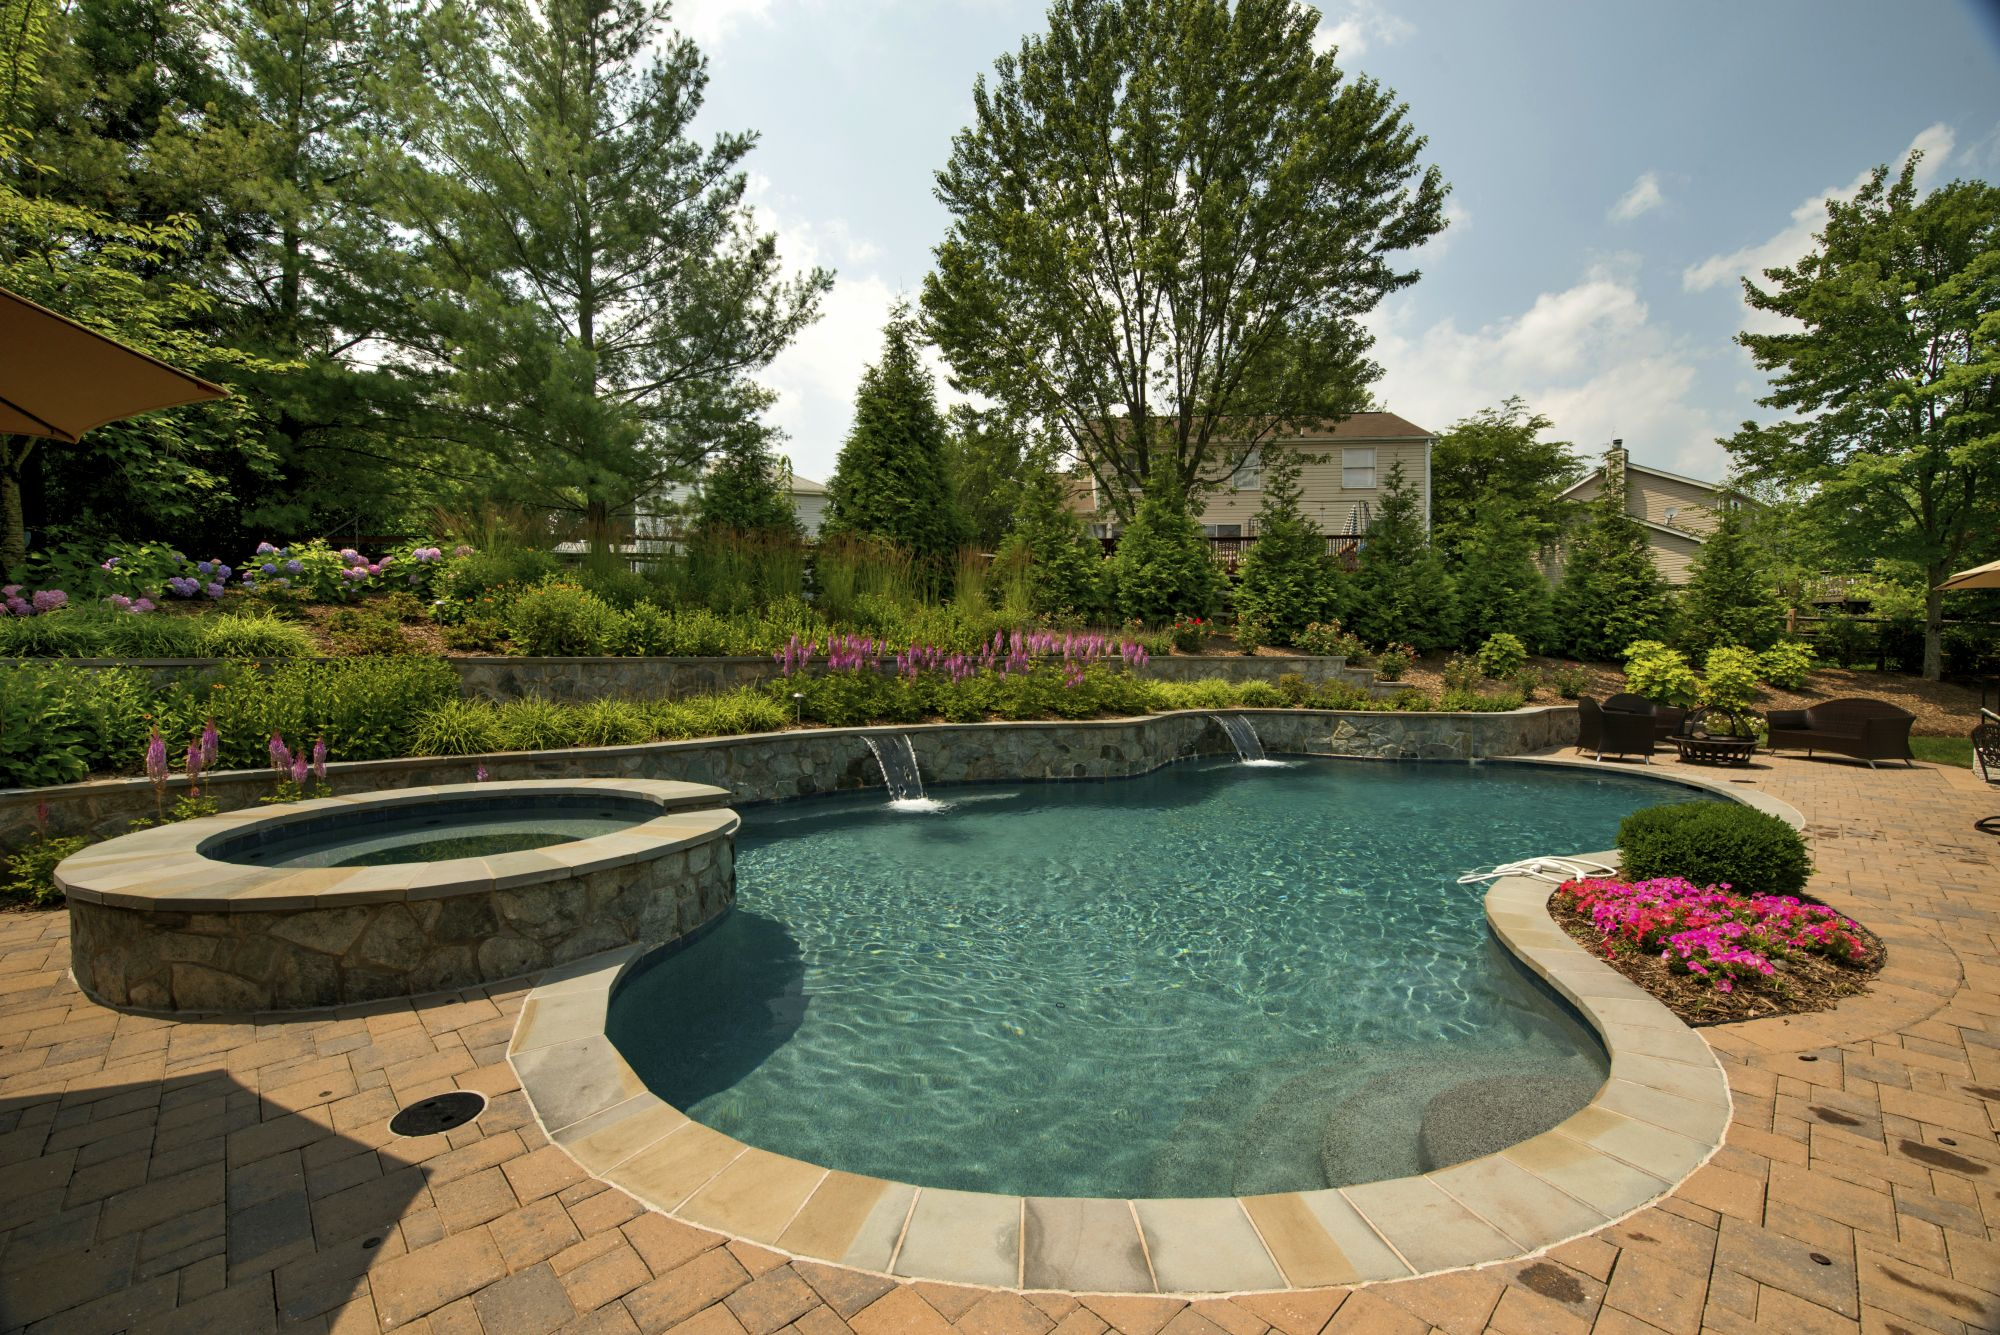 Who to Hire for a Pool Designer? Pool Company or Landscape Designer?